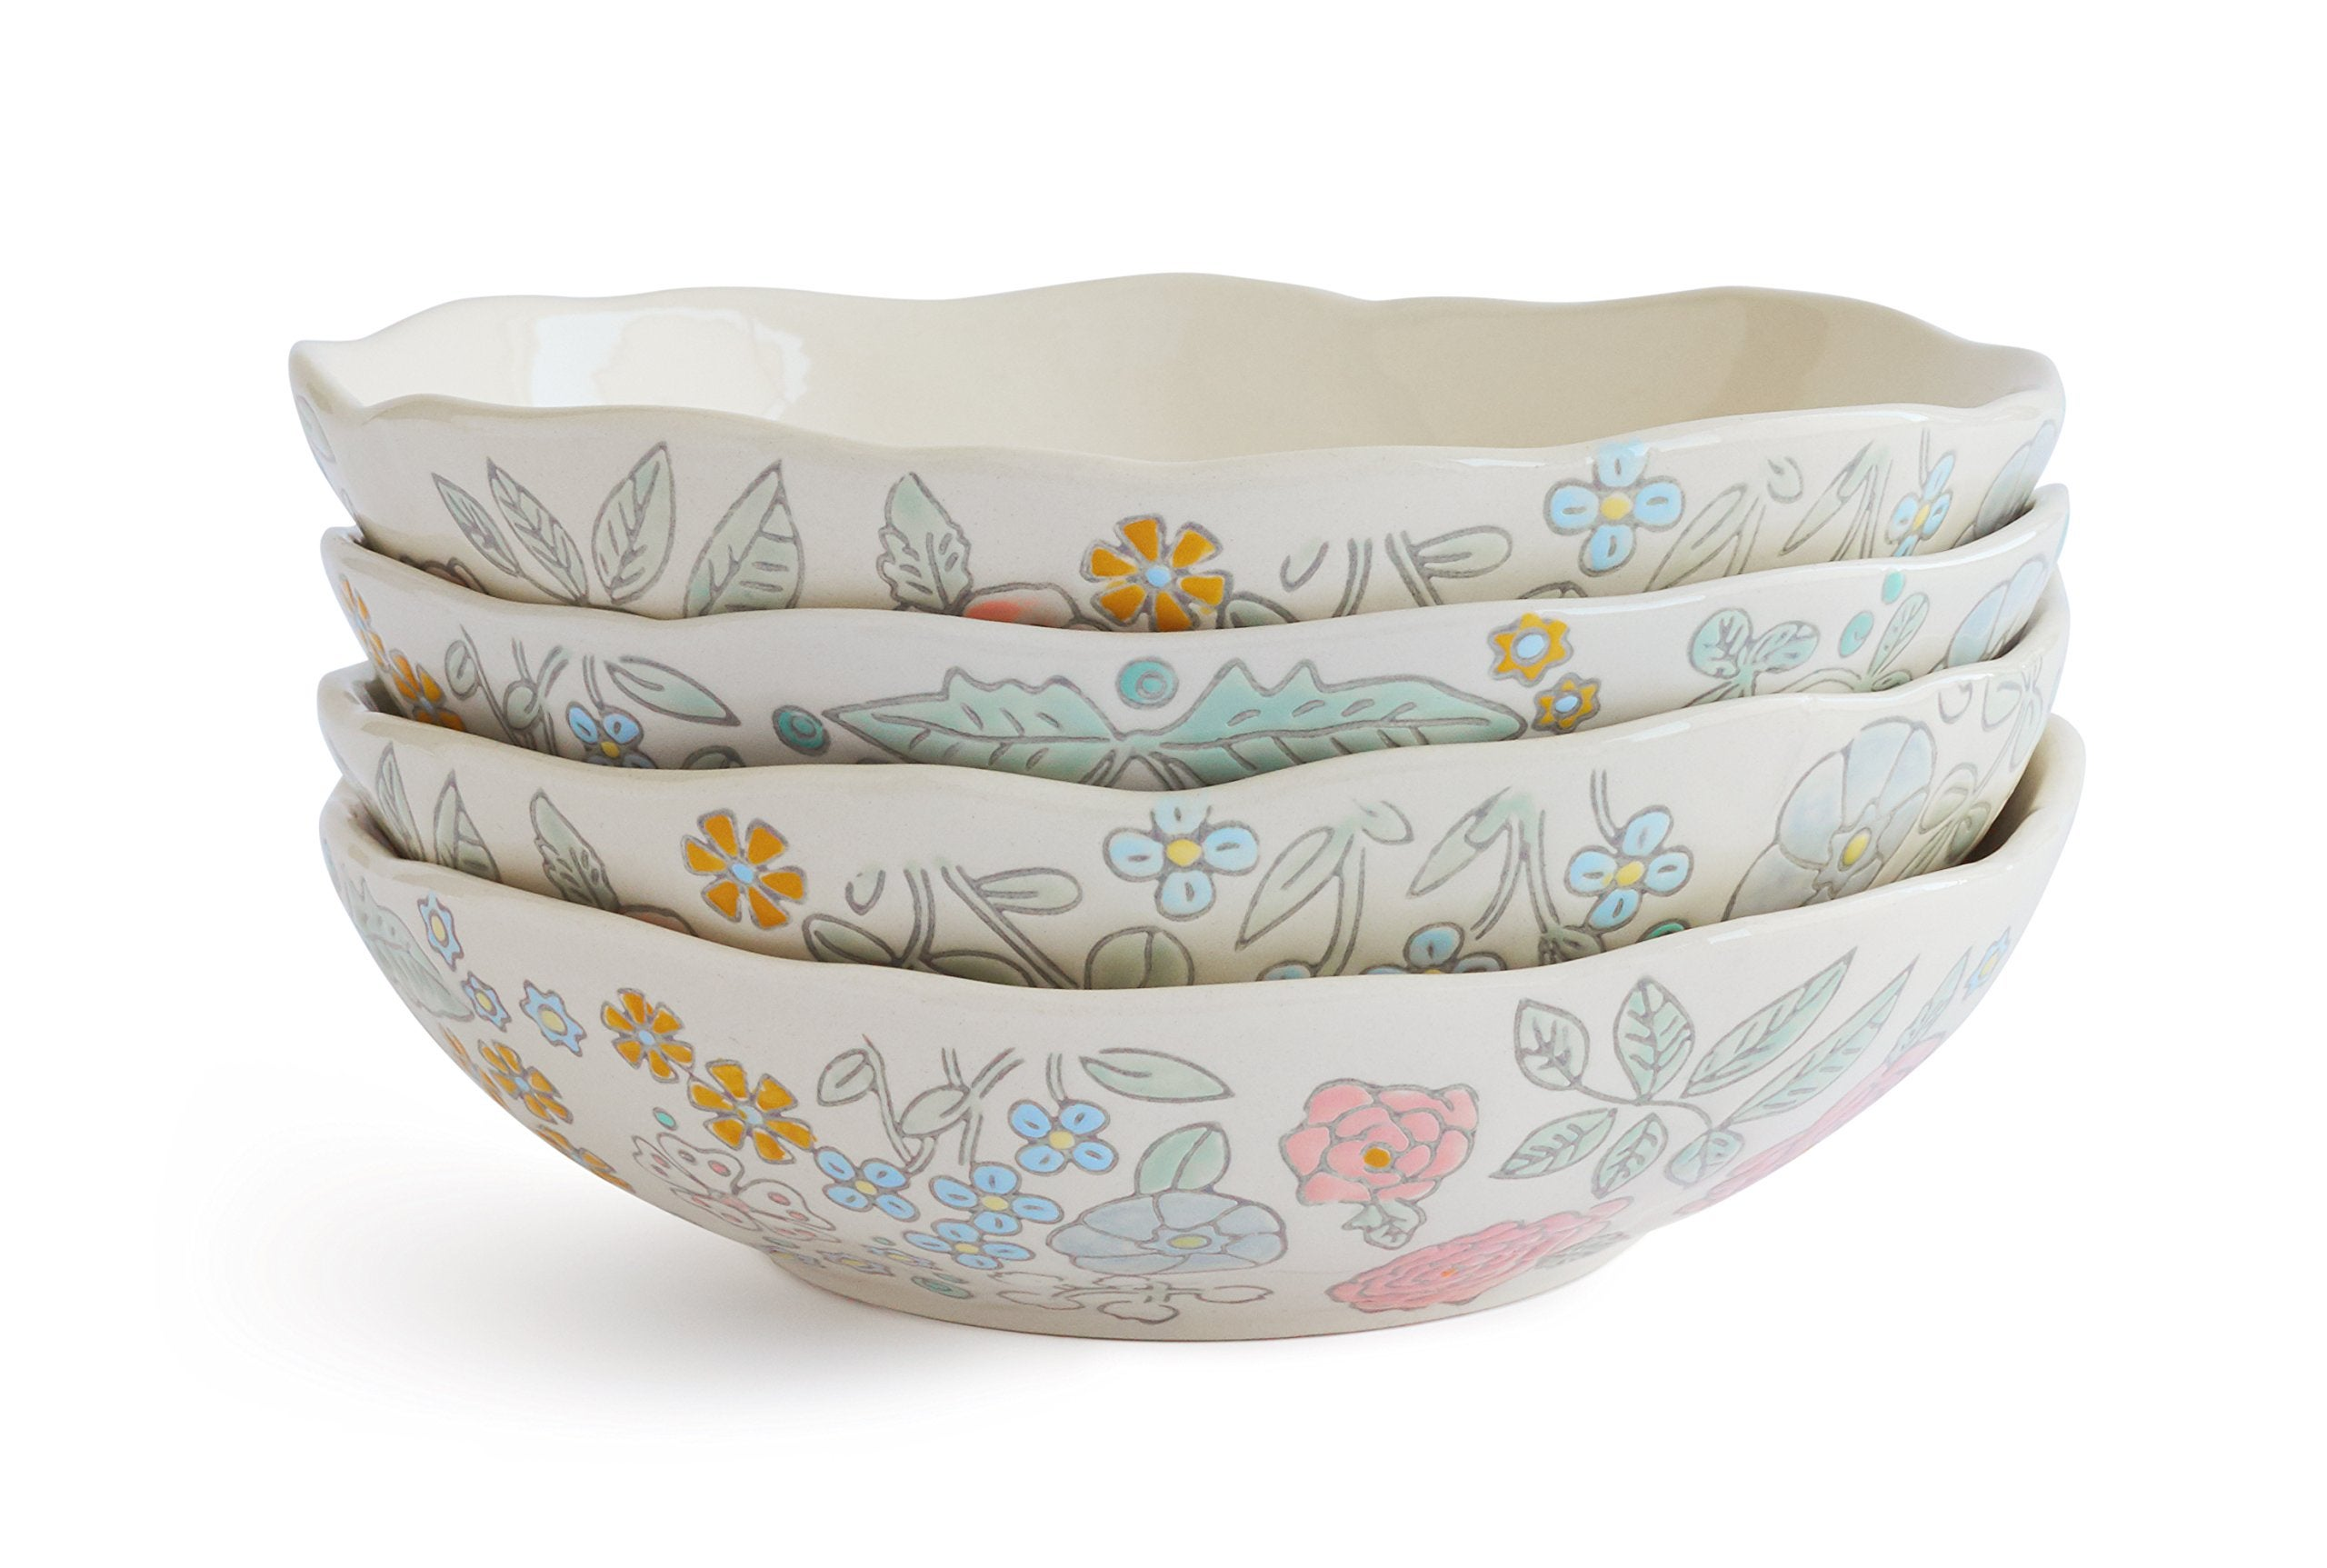 Dorotea Hand Painted Soup/Cereal Bowl, 7.25-Inch